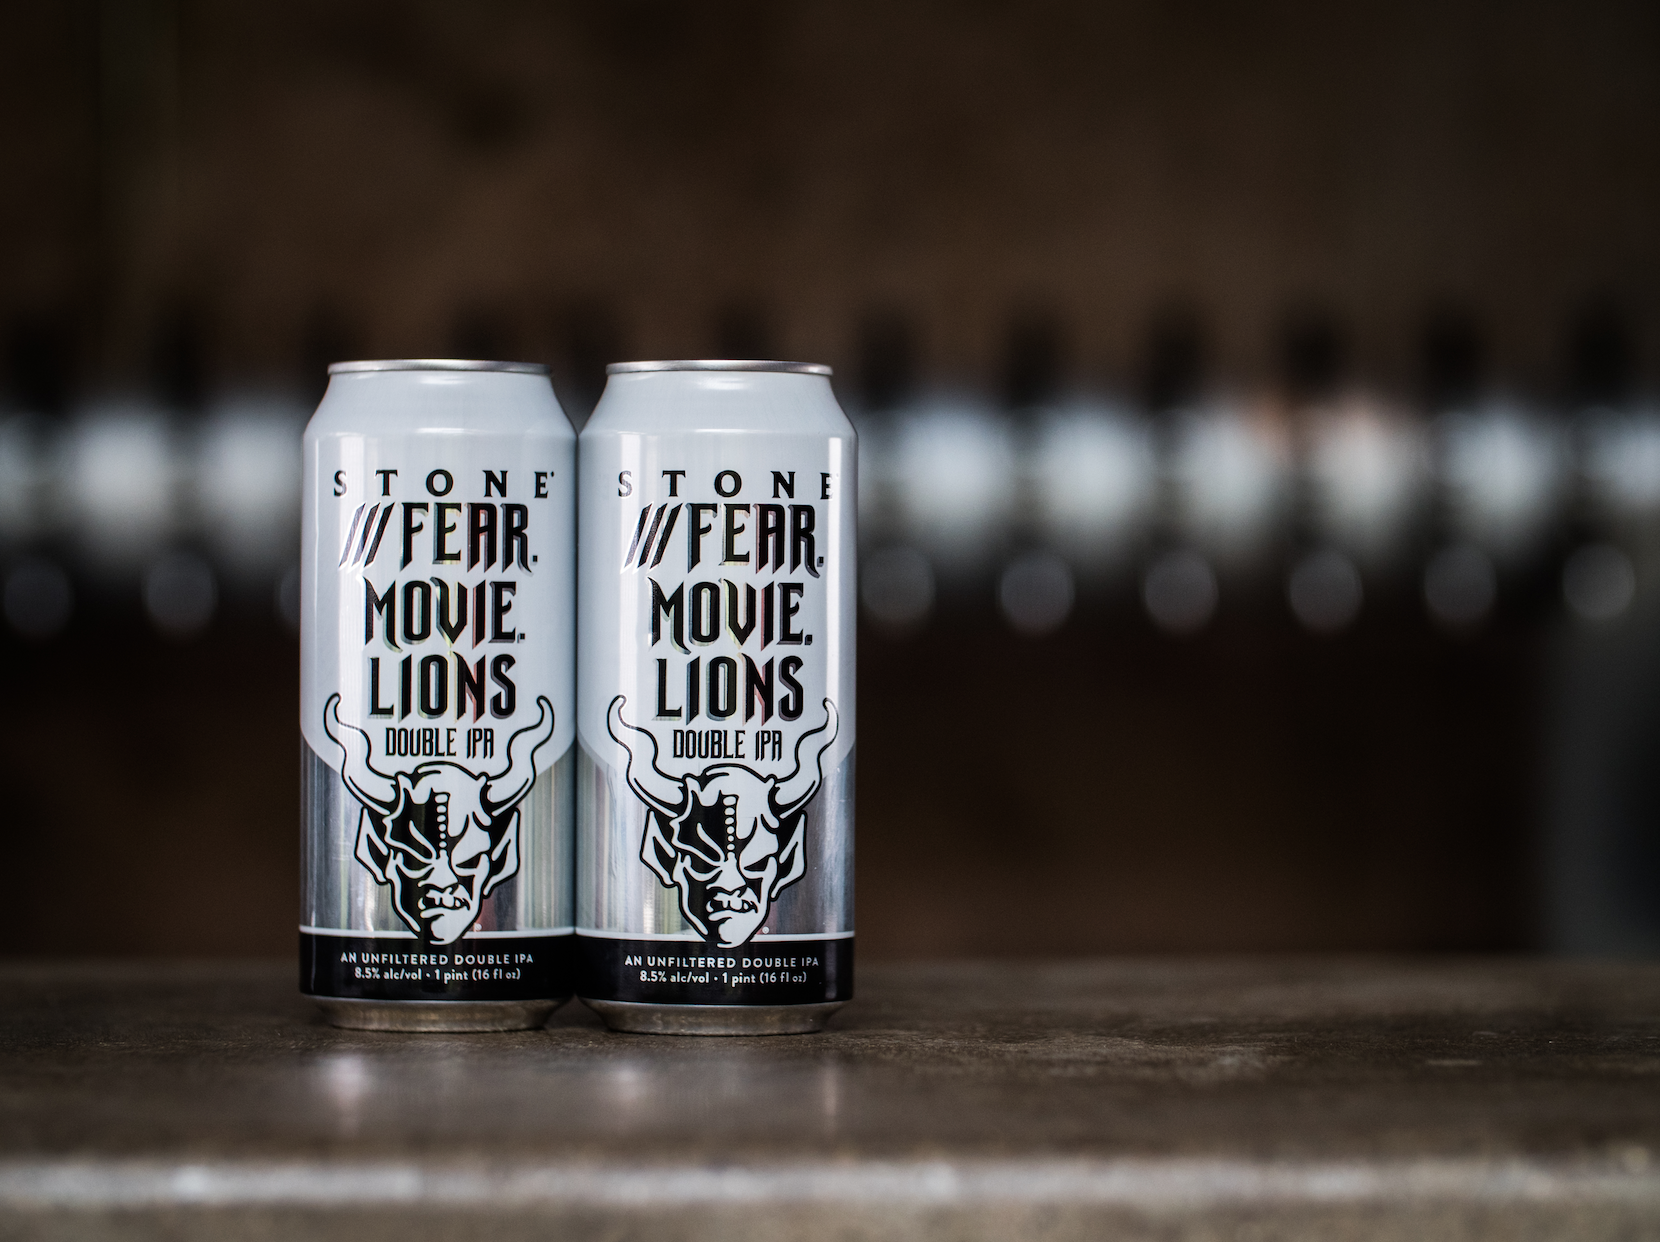 Stone Brewing Releases ///Fear Movie Lions Double IPA